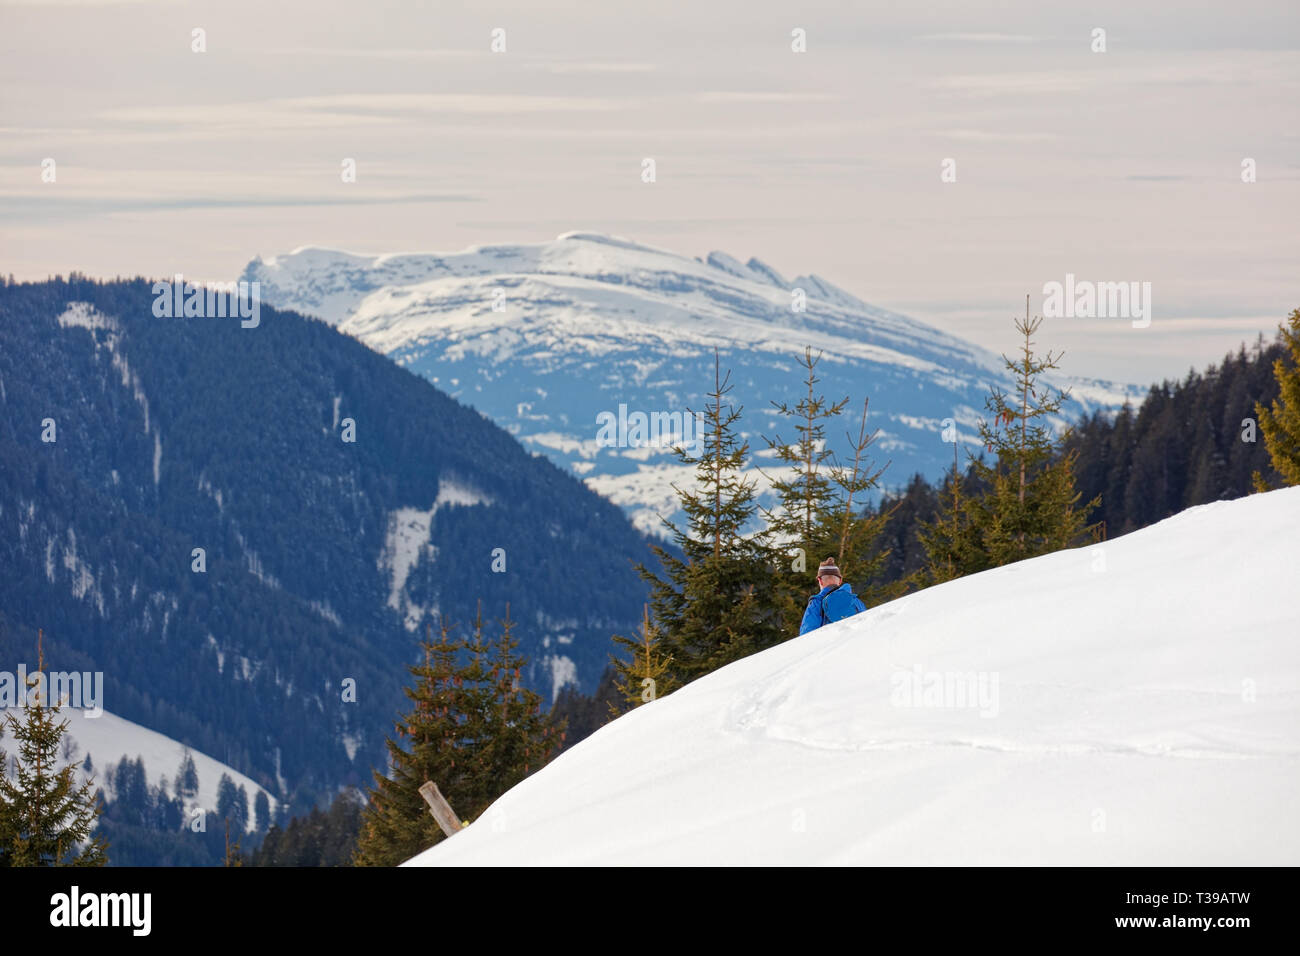 Ski tourist passing by with views from snow covered Furkajoch alpine road with Laternsertal valley and Appenzell Alps in background - Vorarlberg, Aust - Stock Image